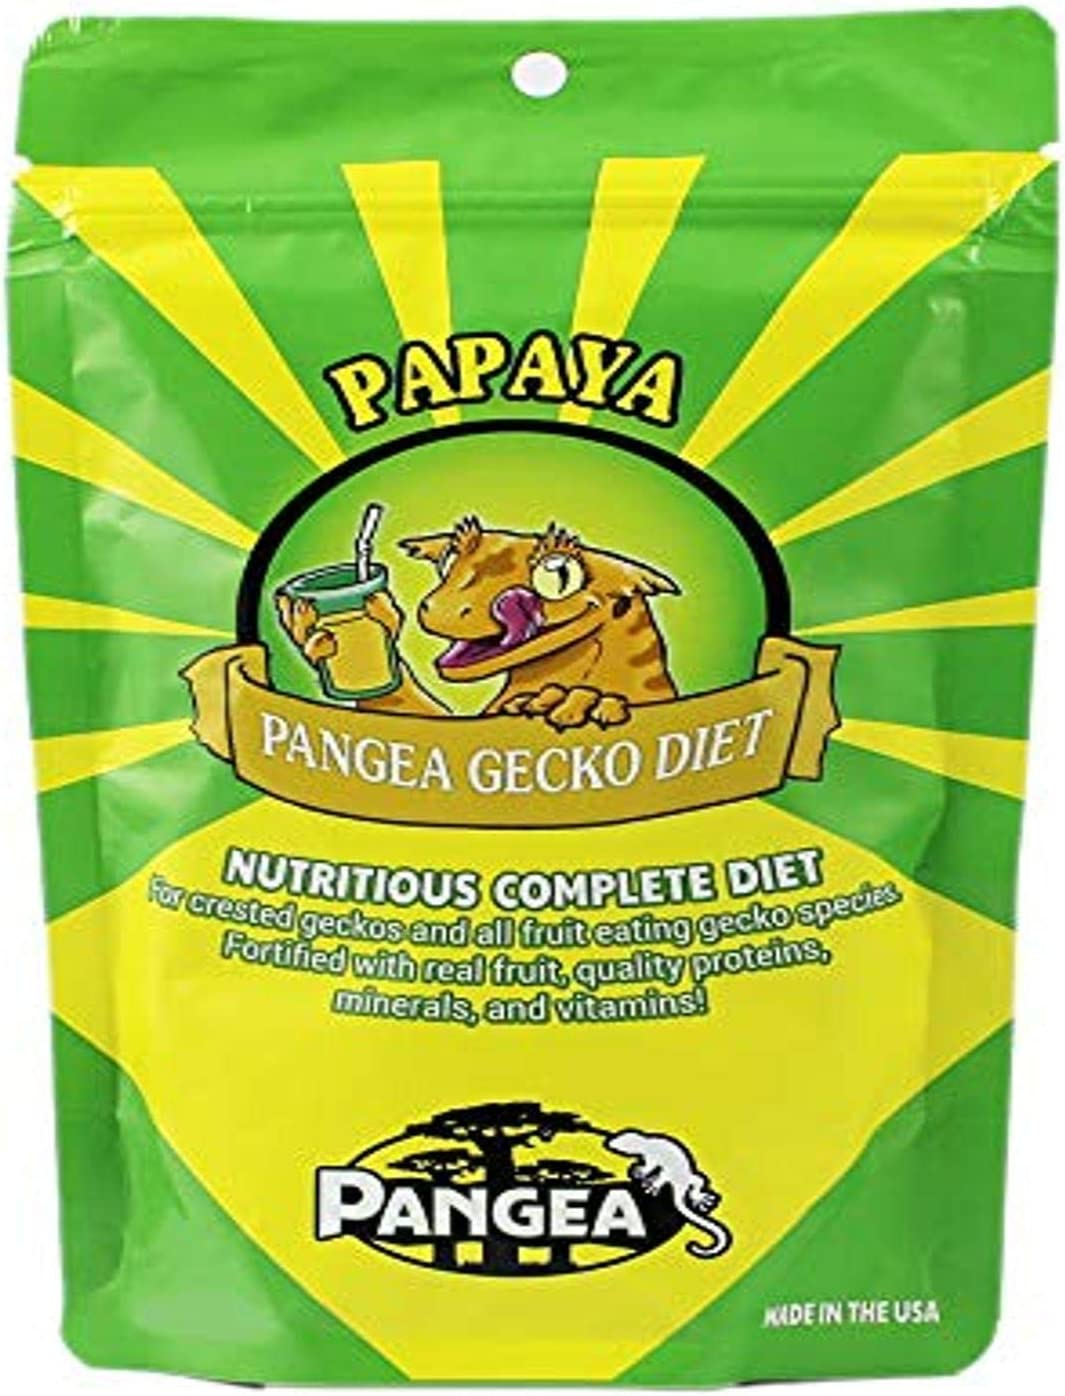 Pangea Papaya Fruit Mix Complete Crested Gecko Food, 2 Oz.